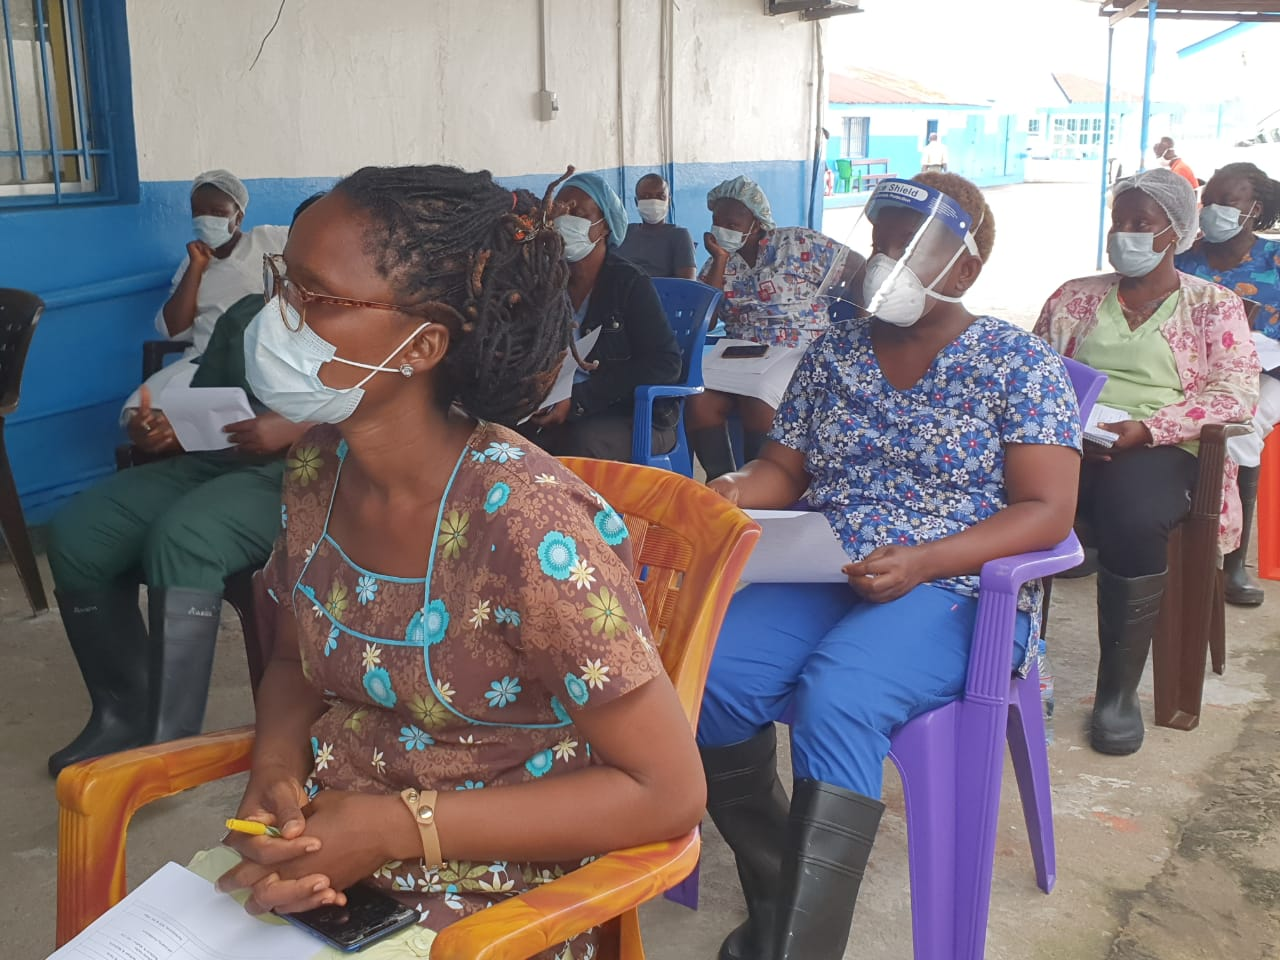 SOS Children's Villages Liberia partners with US Center for Disease Control and Montserrado County Health Team to provide refresher training on infectious disease prevention and control to healthcare workers.